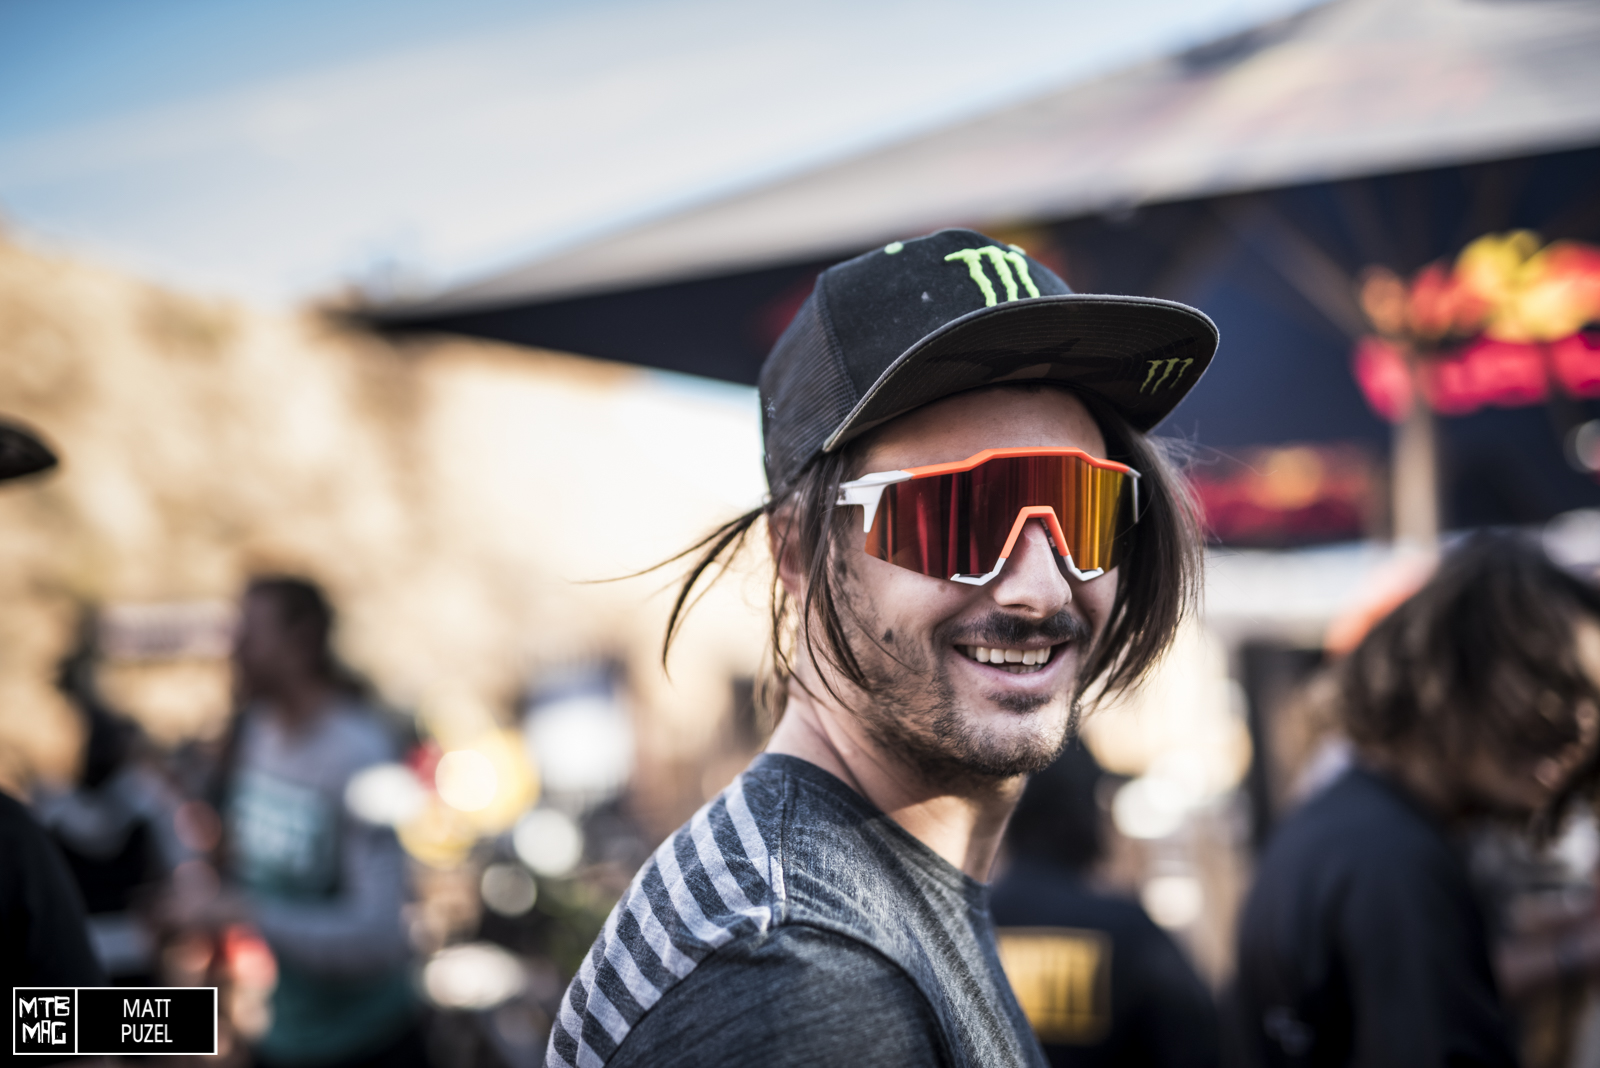 Sam Reynolds has cracked some jokes about how gnarly this event is but he's been smiling the whole time.